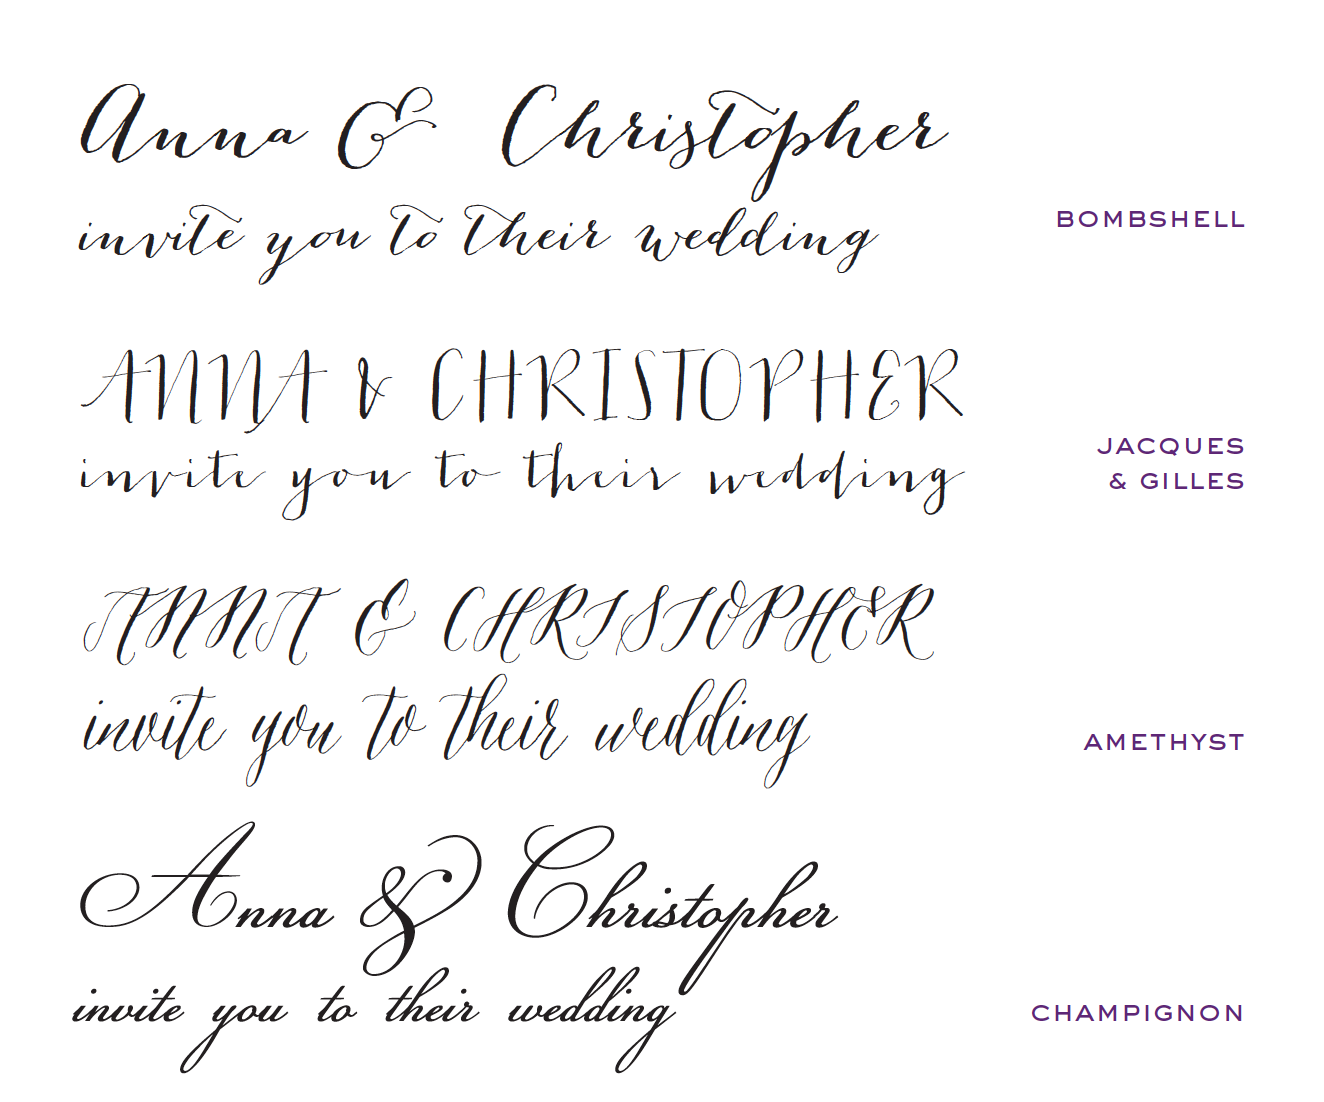 wedding invites bombshell font - Wedding Invitation Fonts